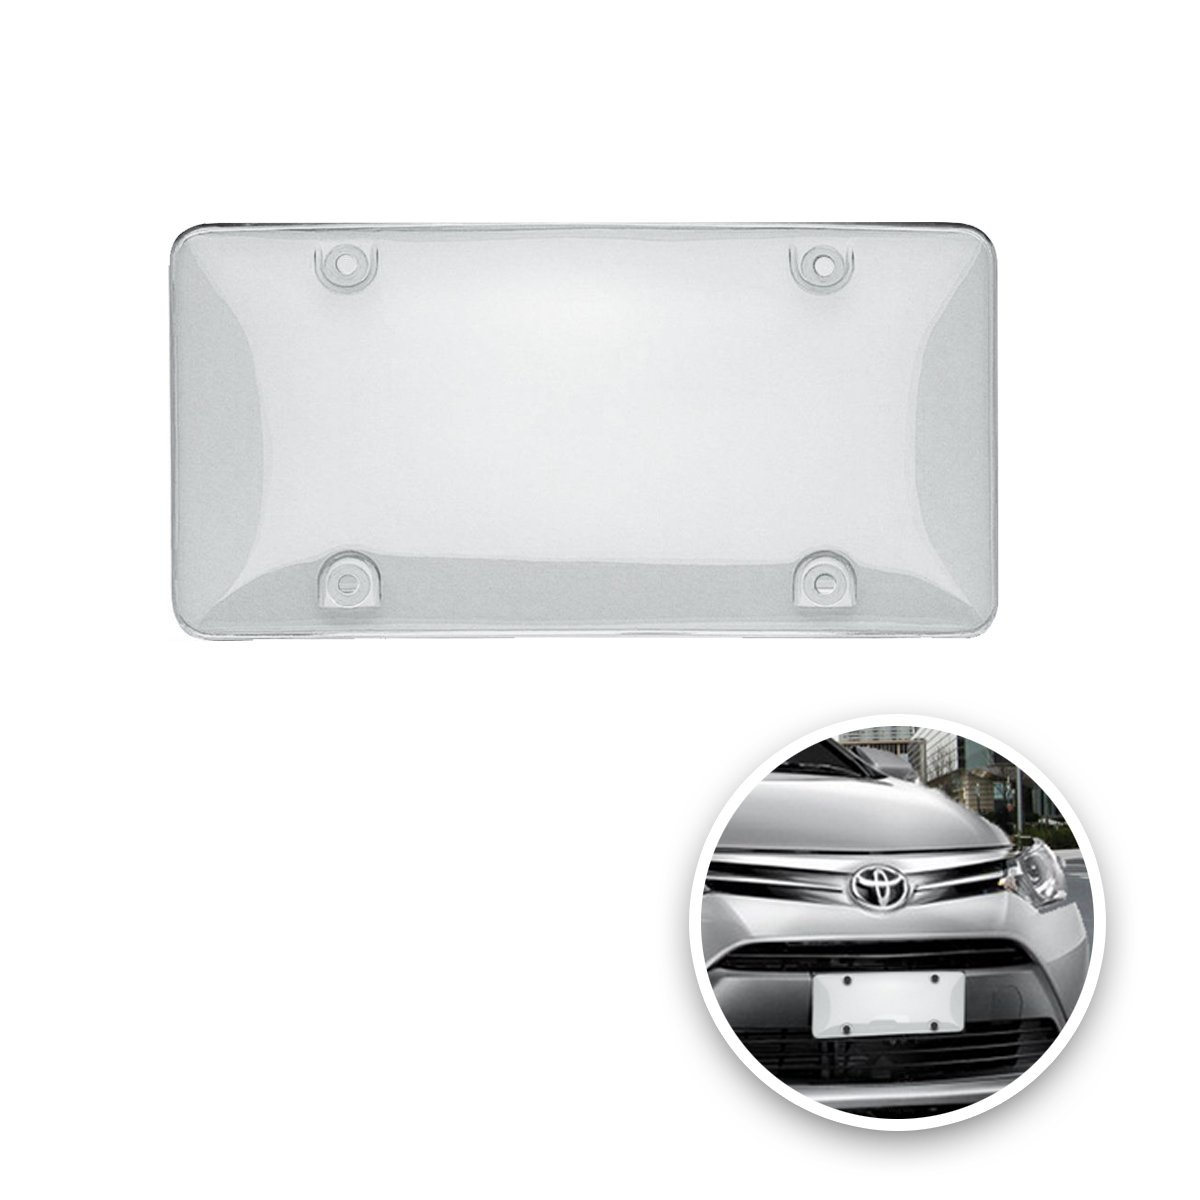 Clear License Shield 2 Cover-Fits All Standard US Plates Front and Back Novelty License Plates Custom Autos Vaygway Car License Plate Cover